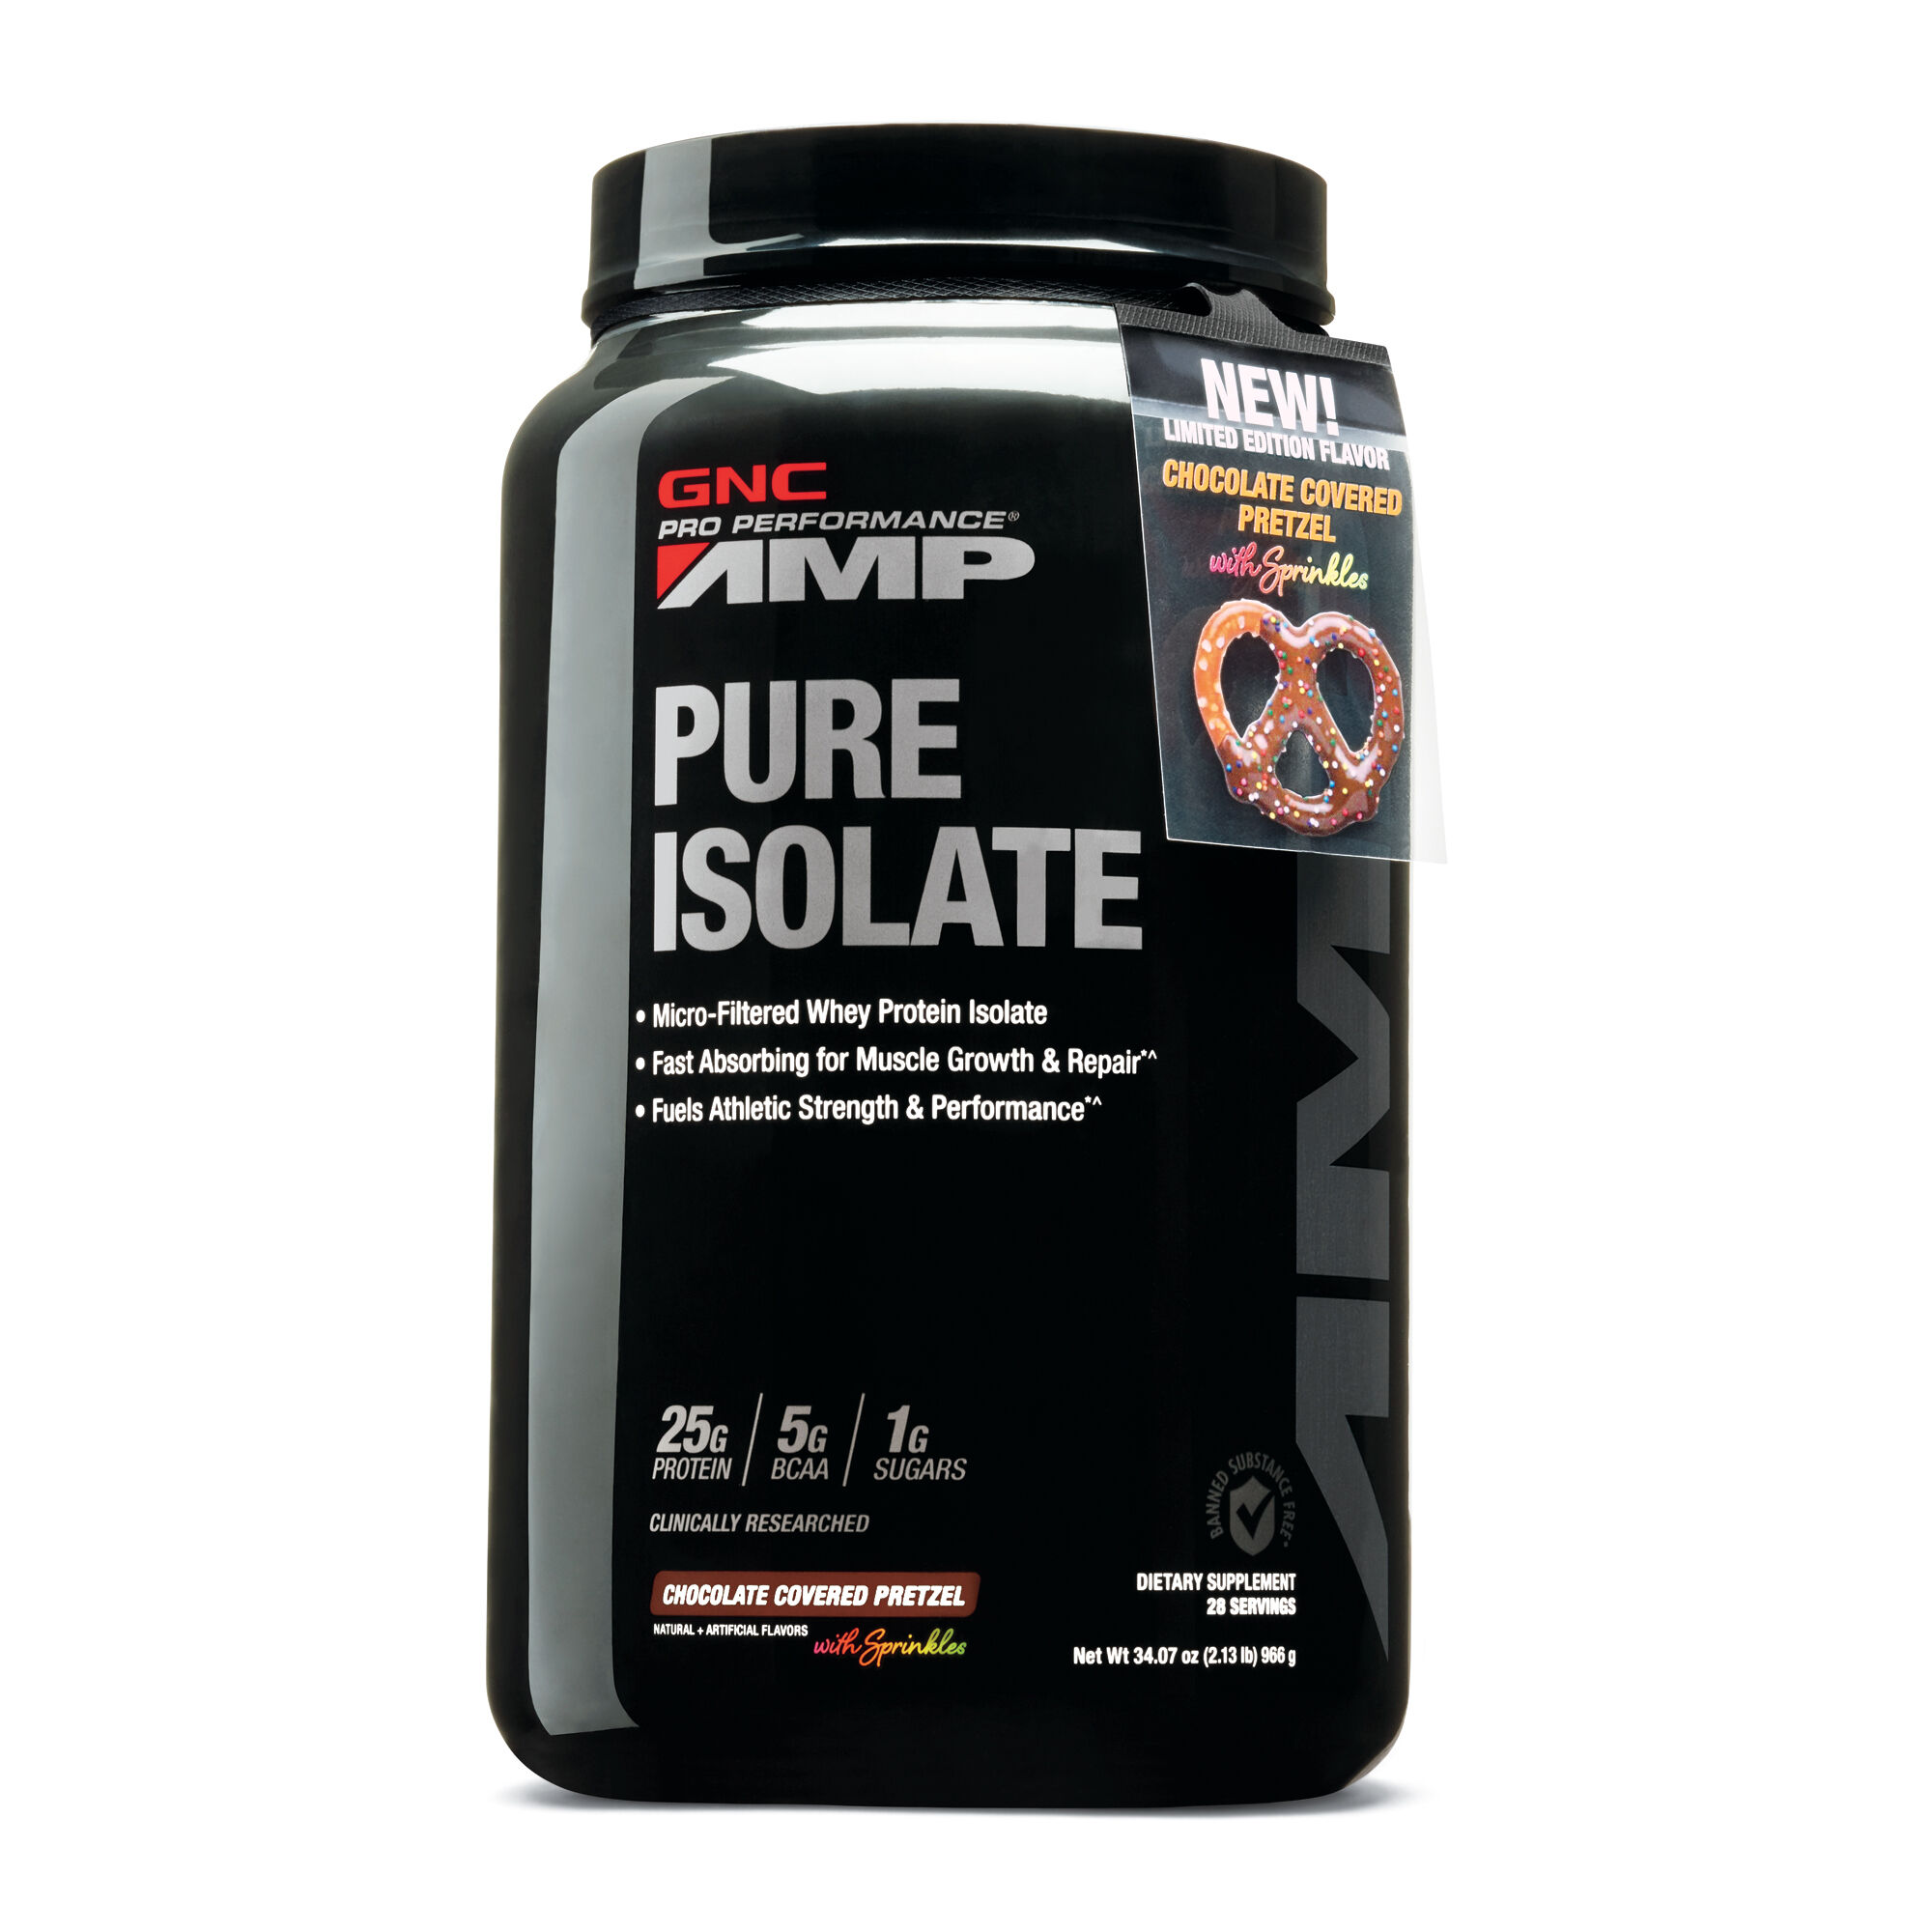 Pure Isolate - Chocolate Covered Pretzel